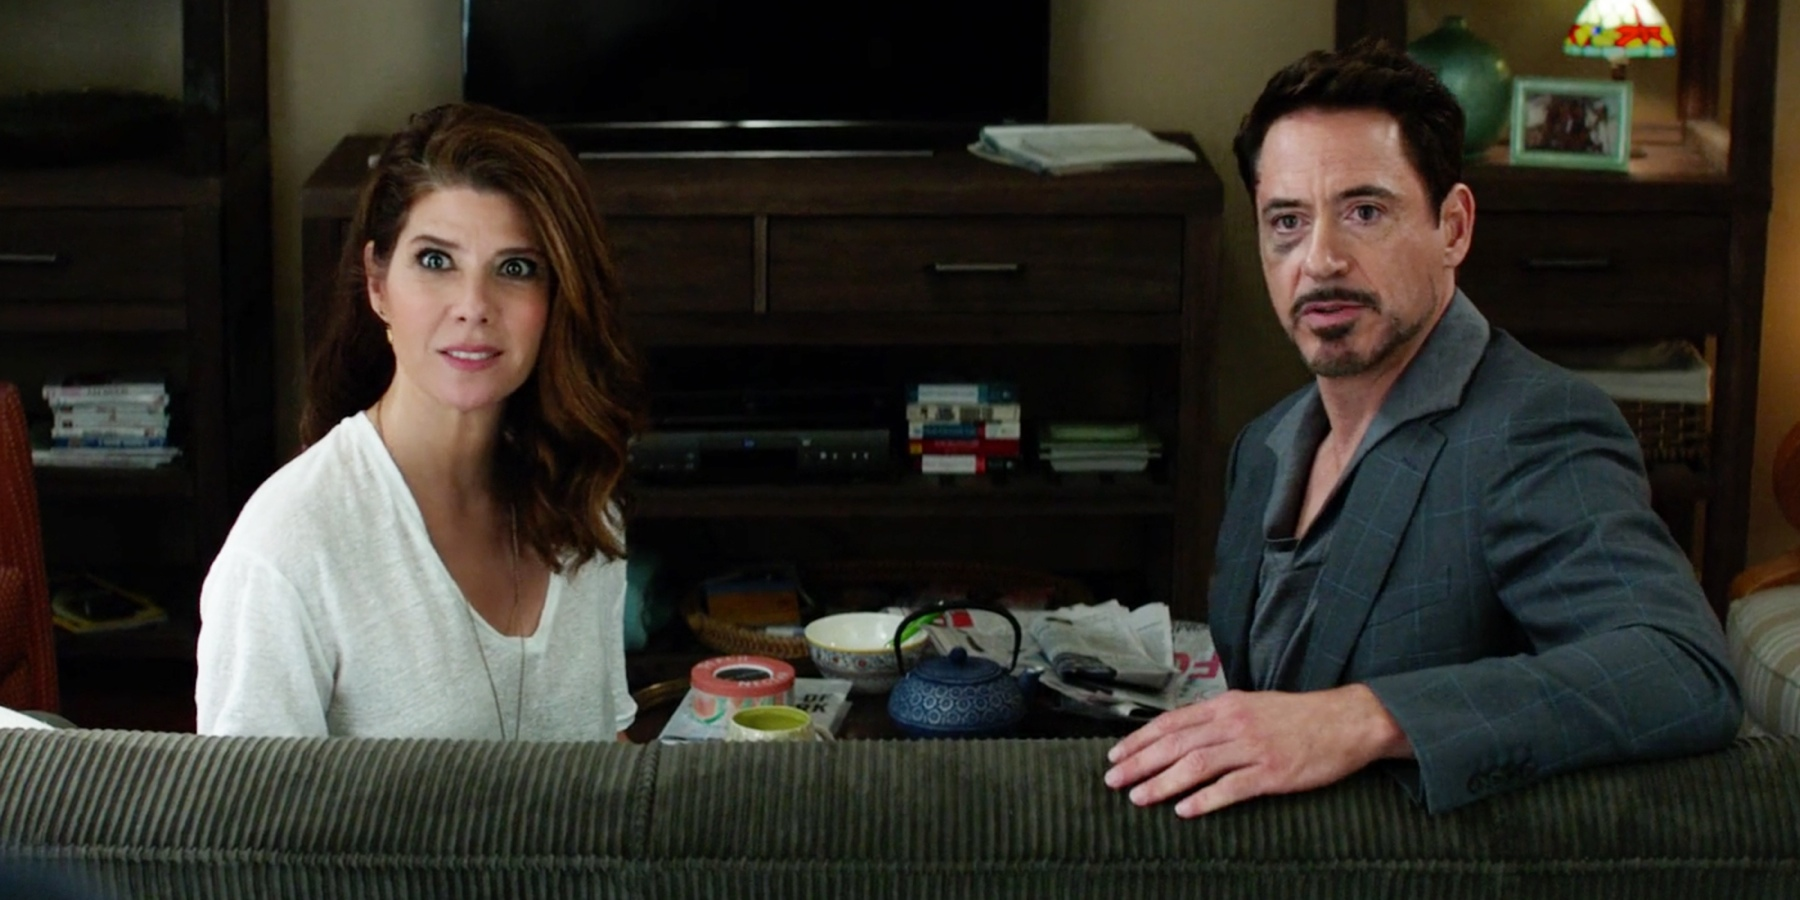 Who plays Aunt May in Captain America: Civil War and Spider-Man: Homecoming?